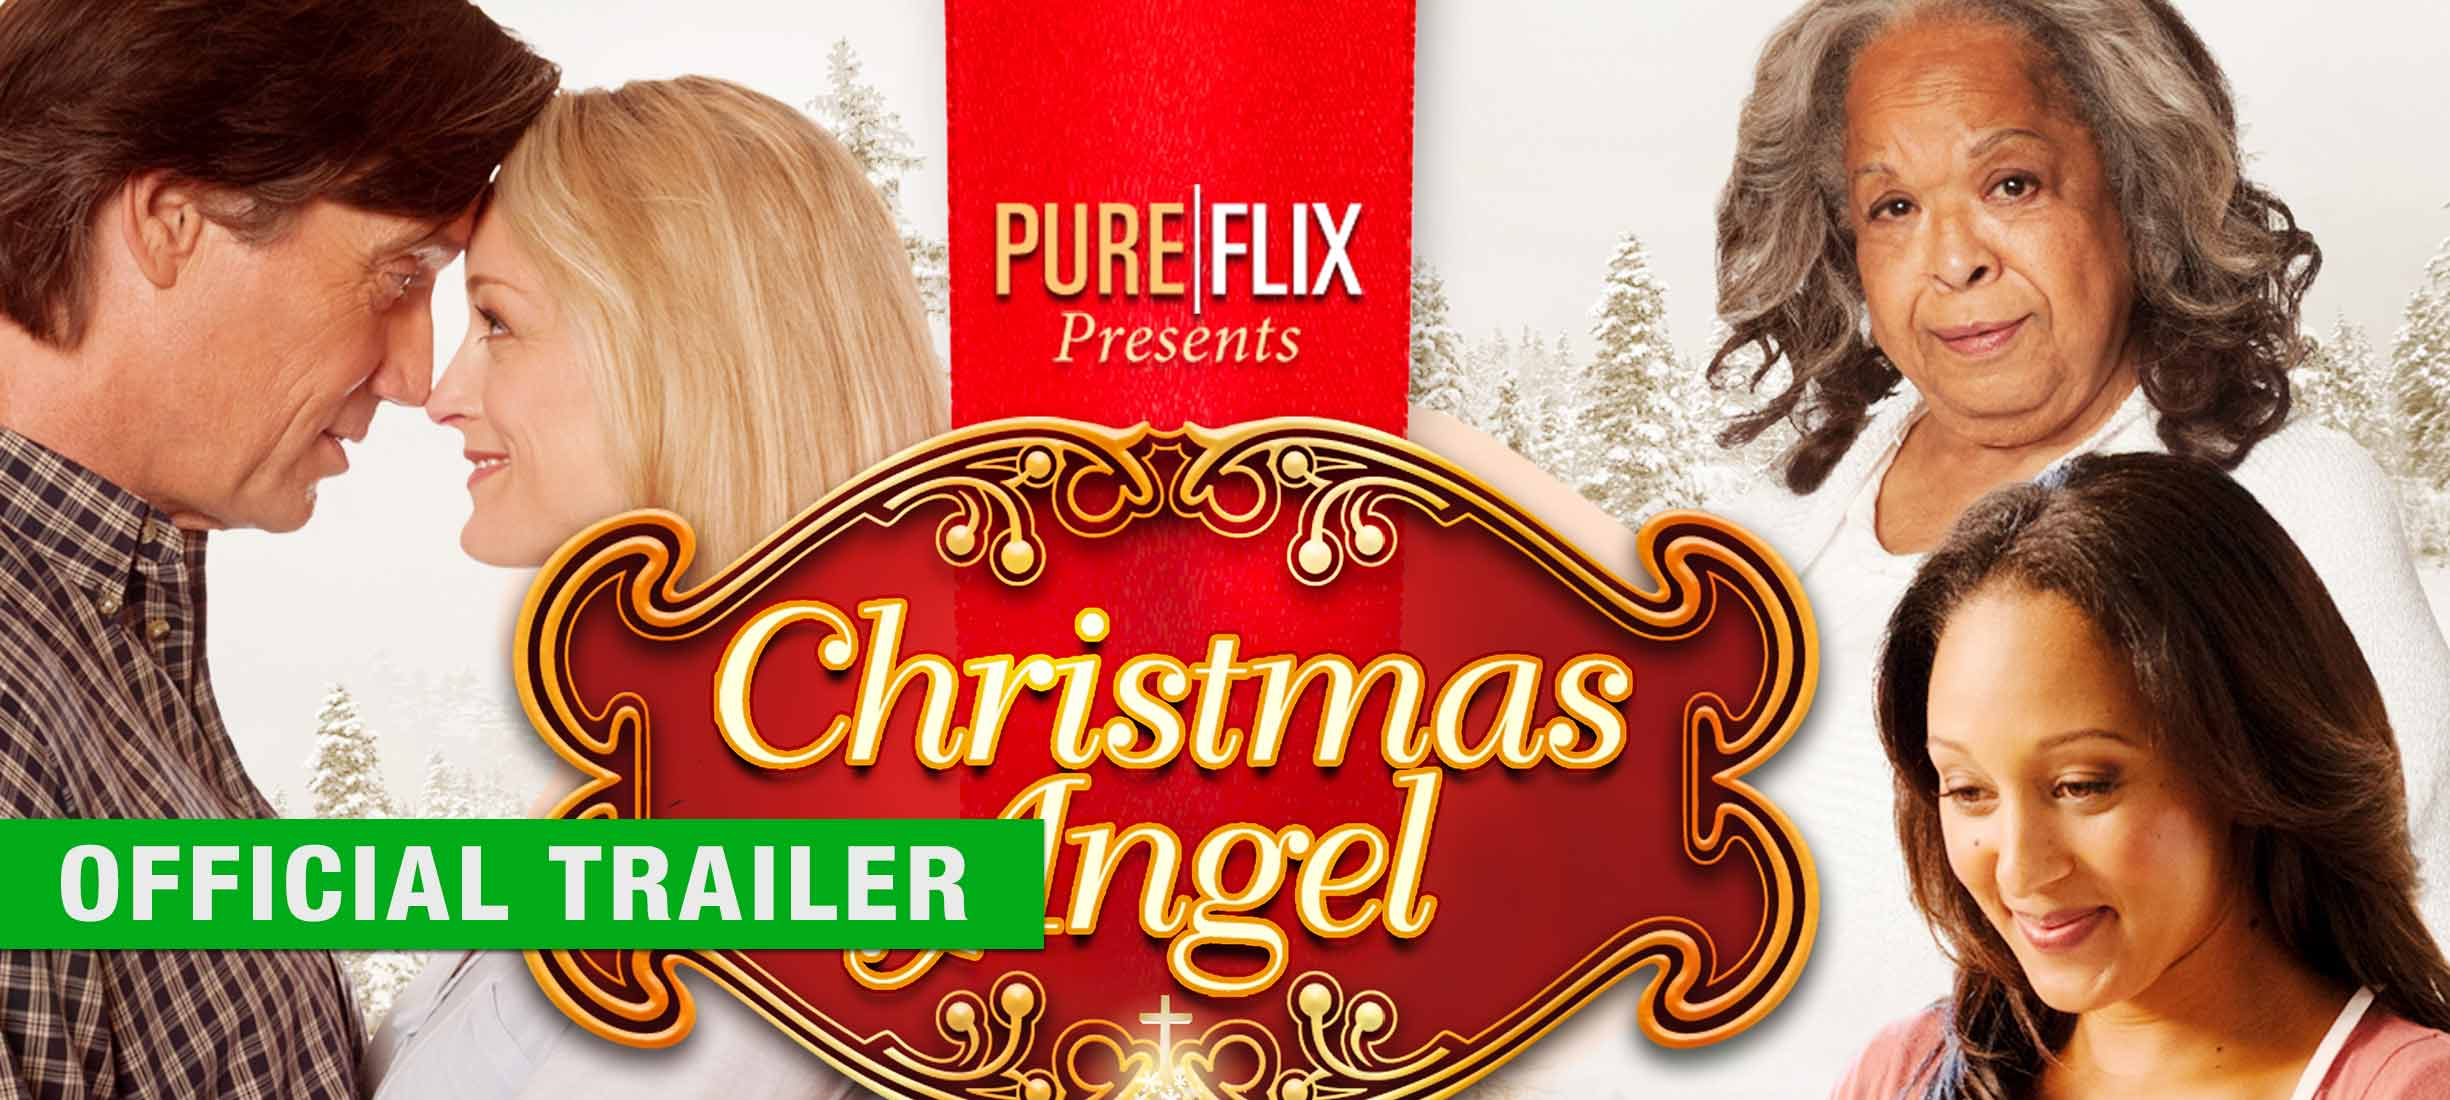 Christmas Angel: Trailer